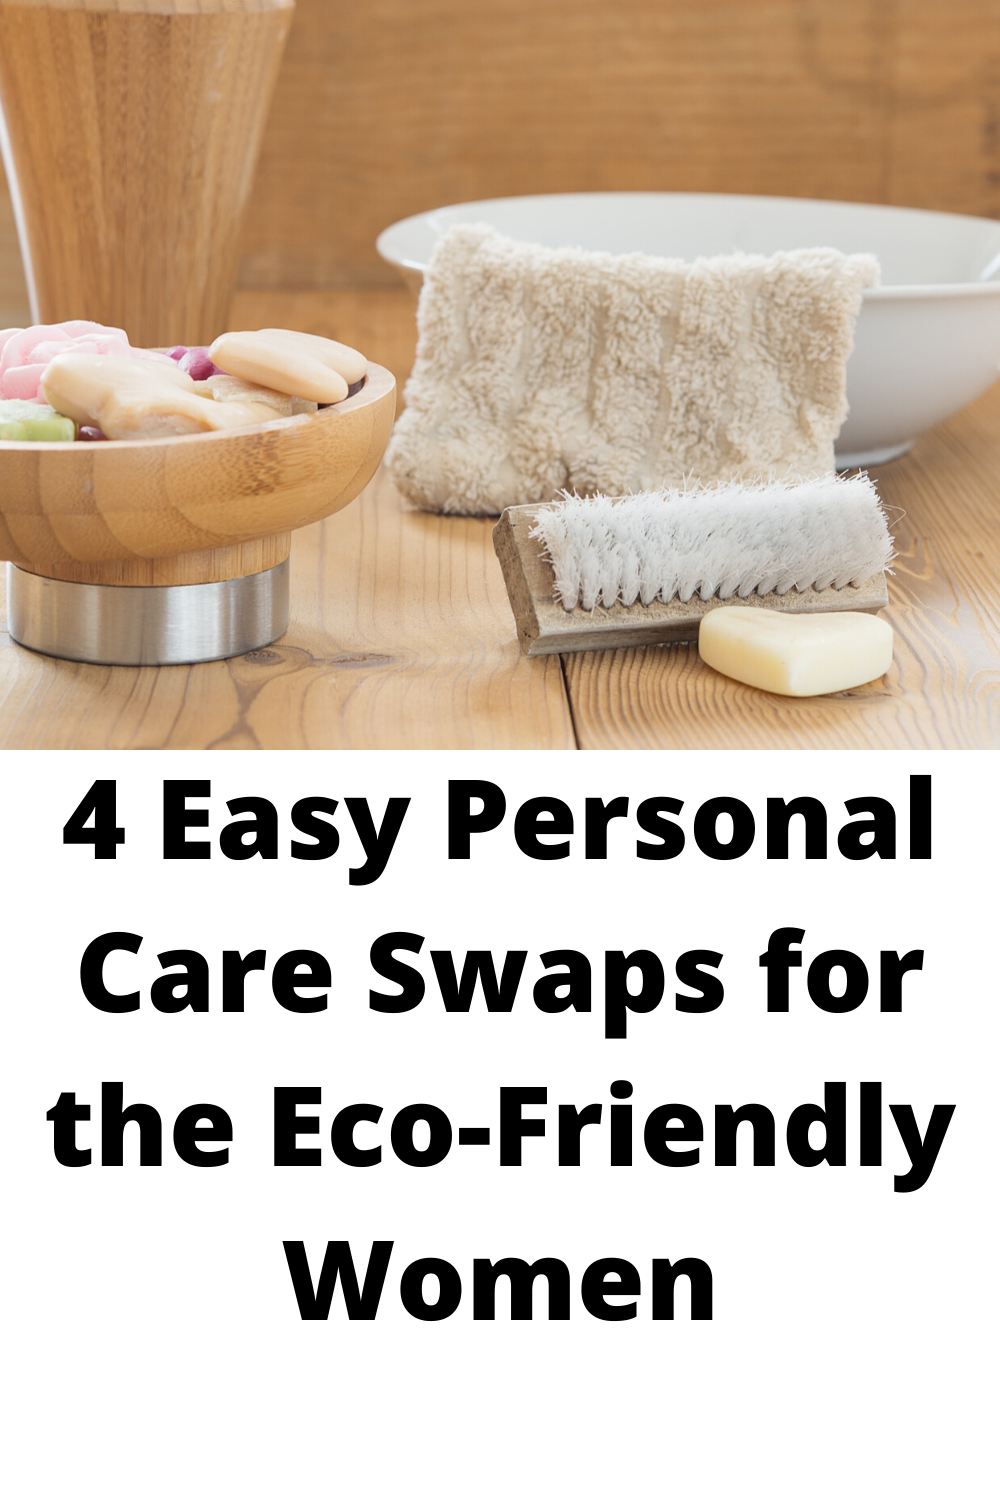 4 Easy Personal Care changes to be Eco-Friendly